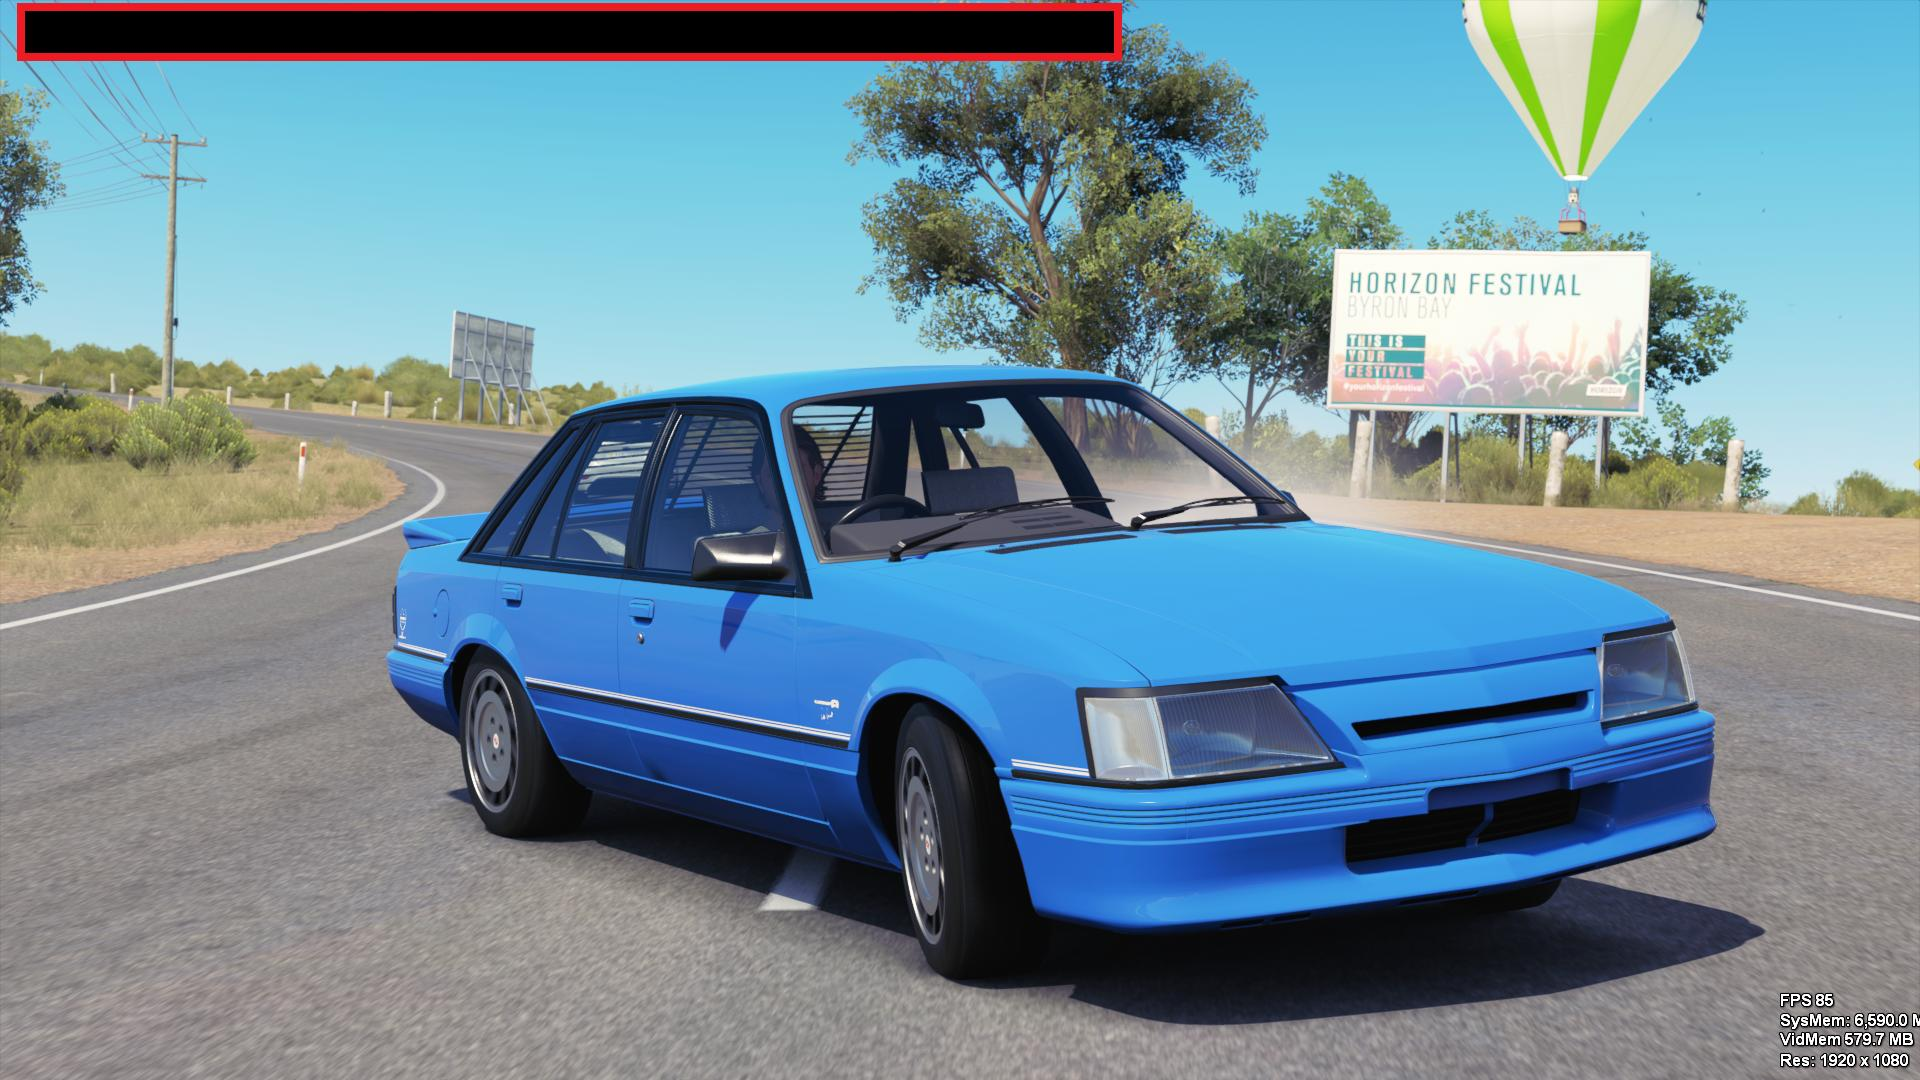 forza horizon 3 developer build leaked cars showcased in new screenshots